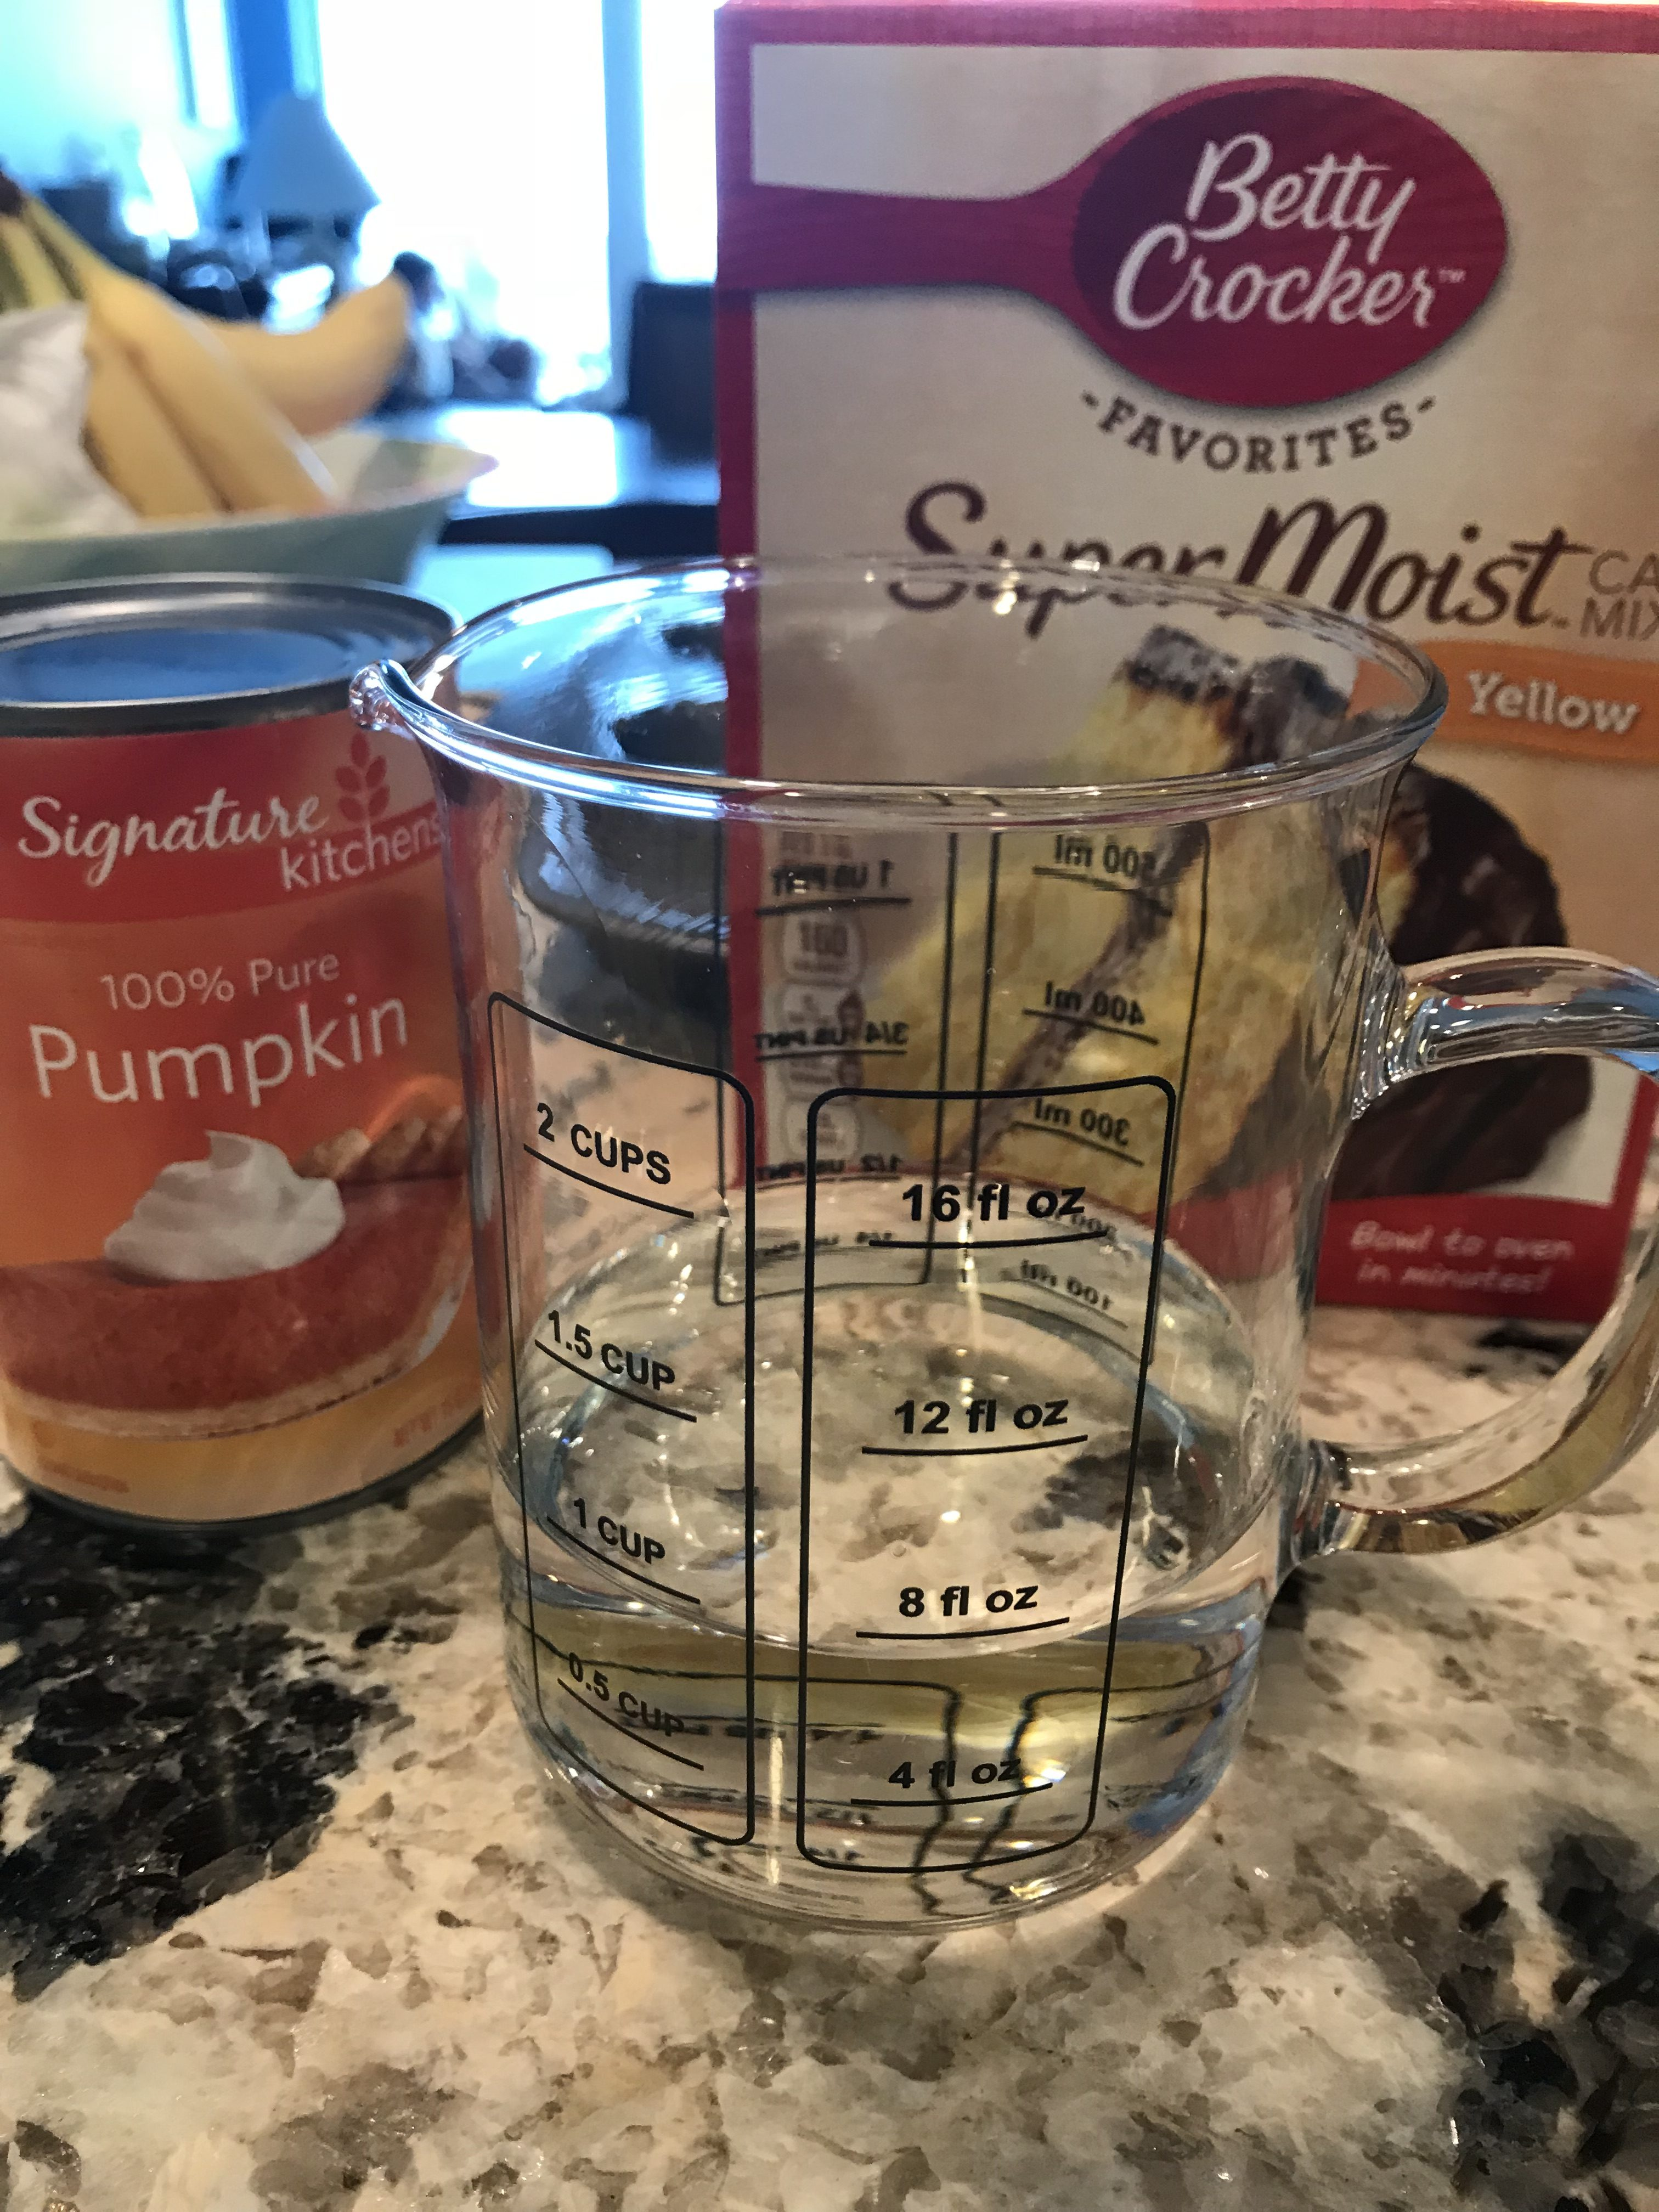 Tips For Throwing A Summer Friendsgiving For Your Kids and a Weight Watchers 3 Point Pumpkin Muffin Recipe.